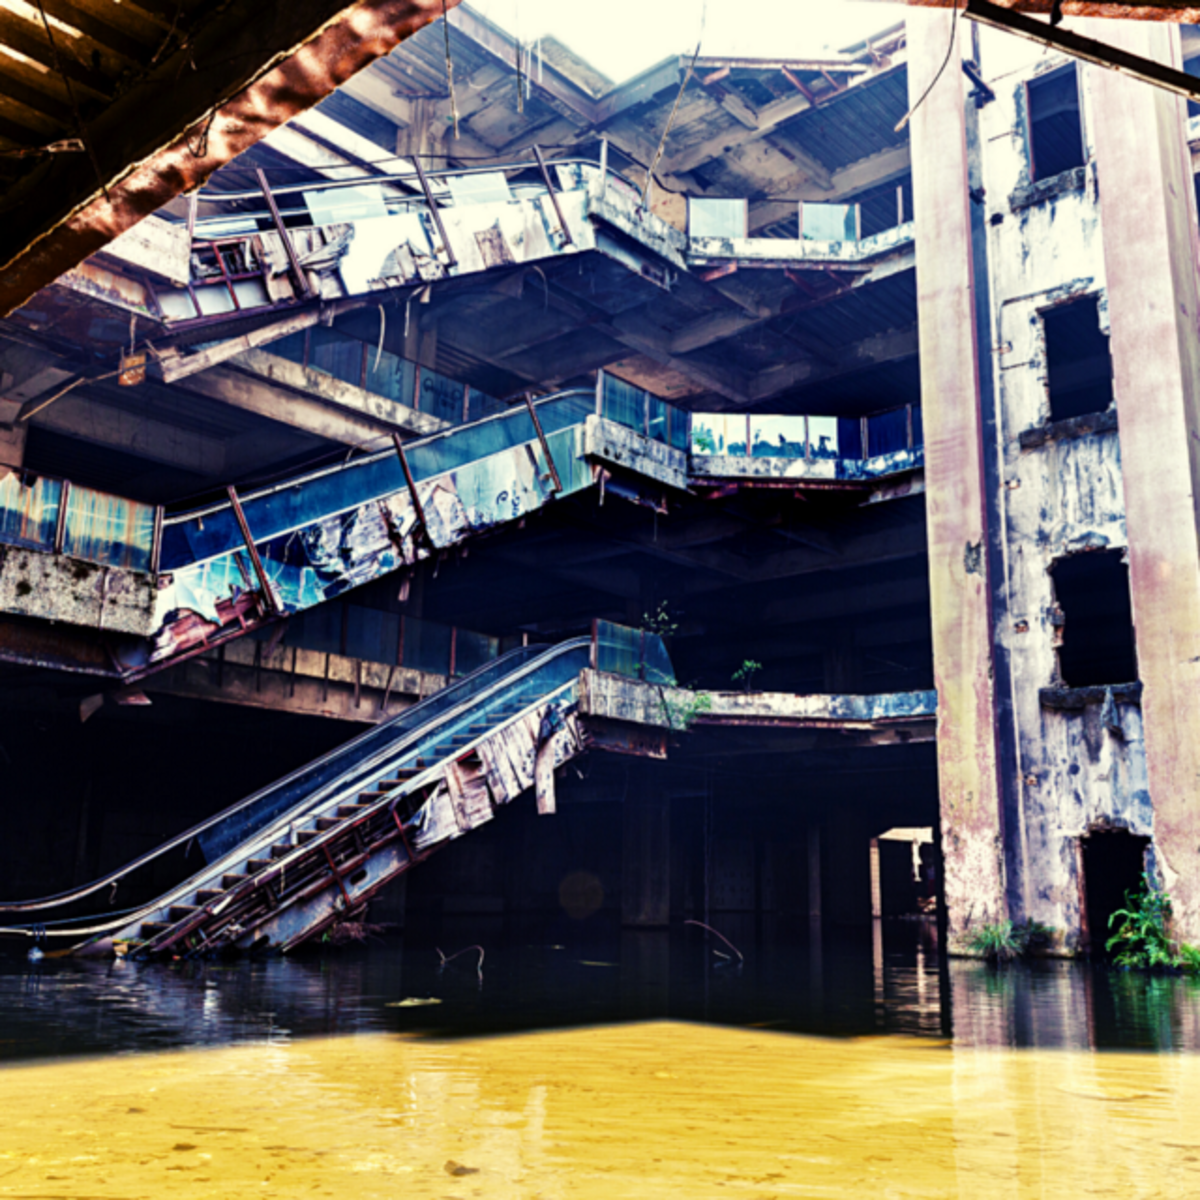 10 Abandoned Holiday Destinations With Fascinating Backstories